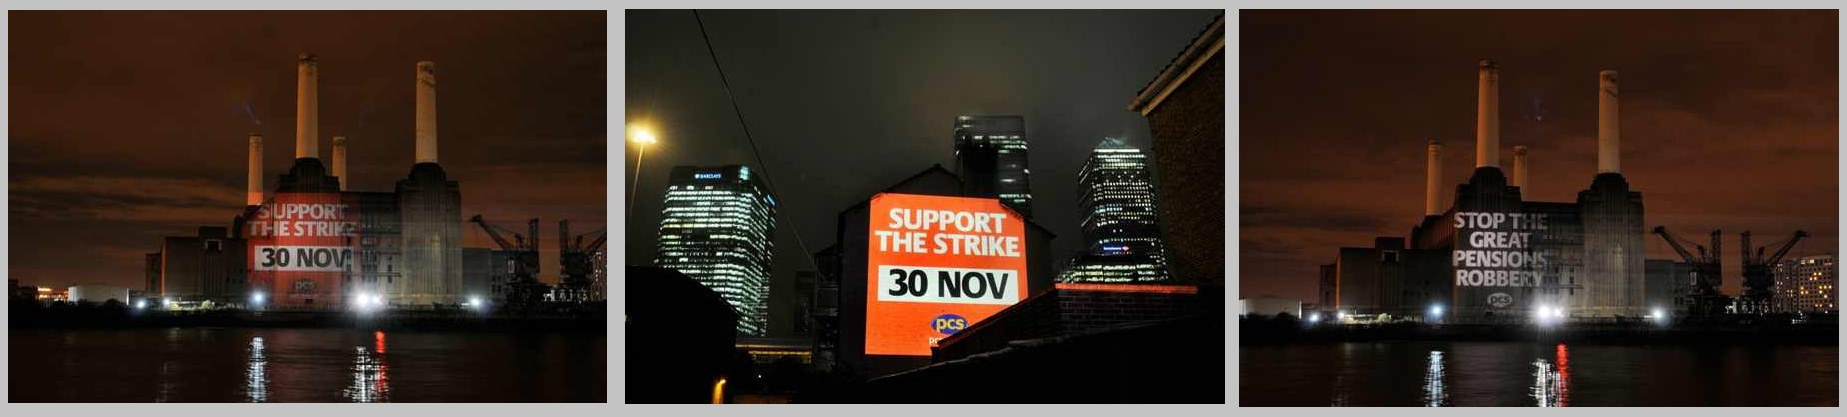 PCS UNION OUTDOOR BUILDING PROJECTION CAMPAIGN ACROSS LONDON